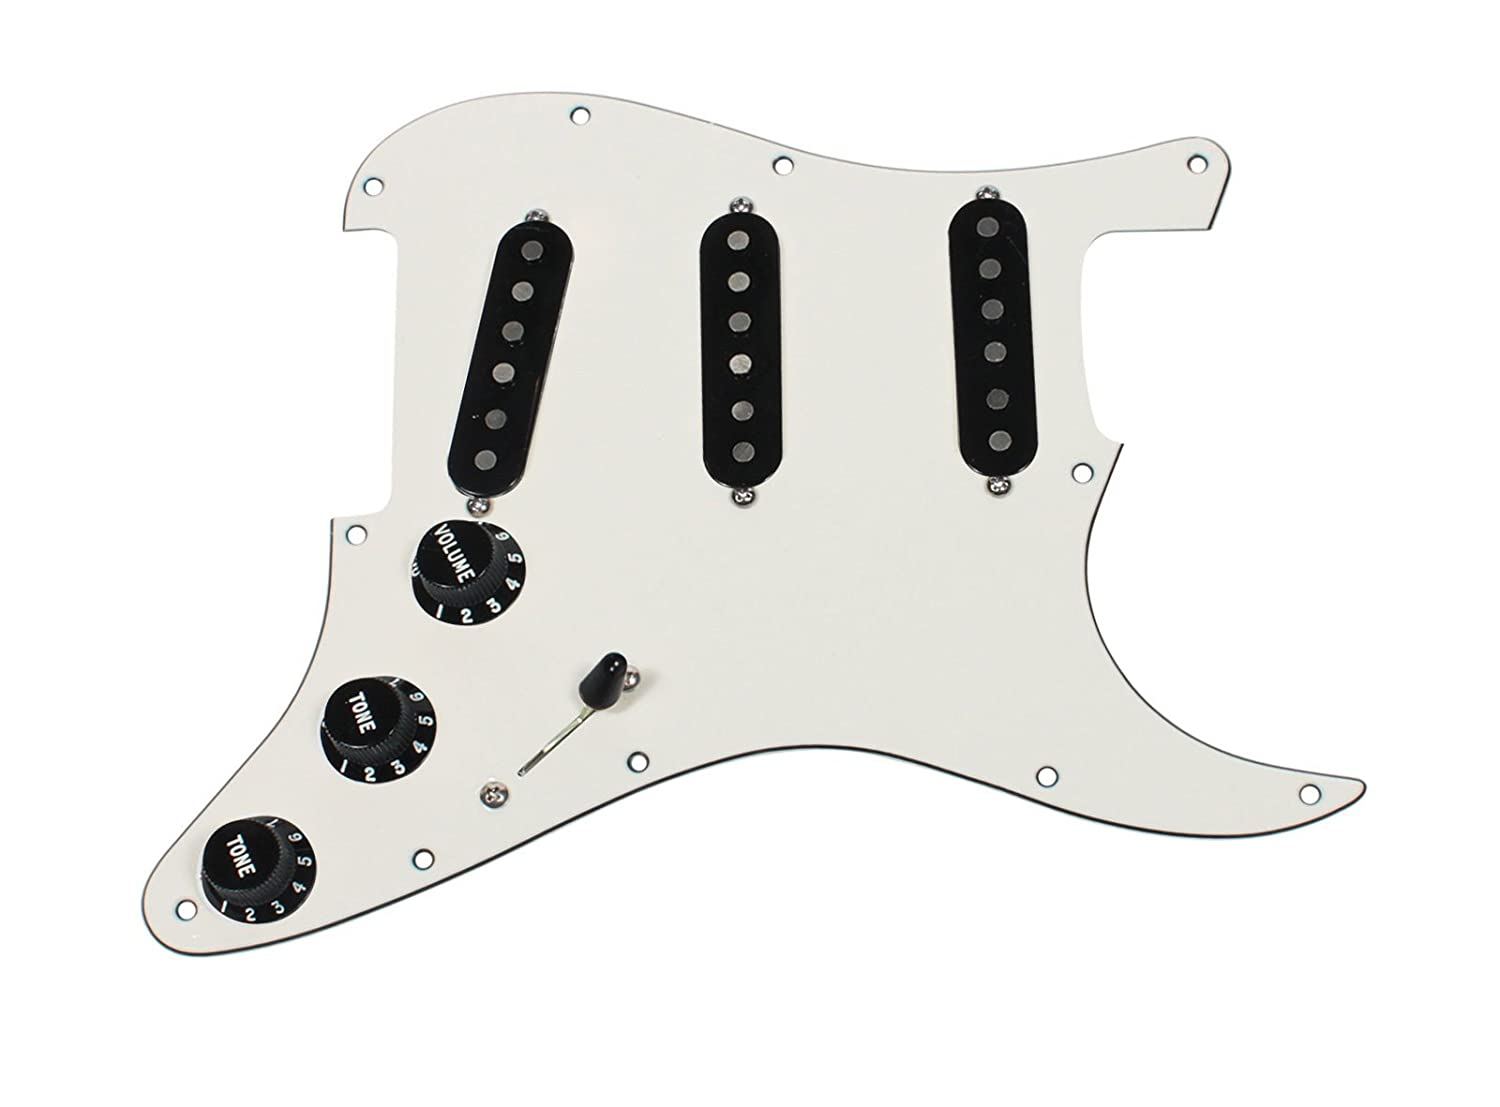 Fender Custom '54 Black Loaded Strat Pickguard Parchment / Black boat output loaded jack chrome plate socket for fender strat